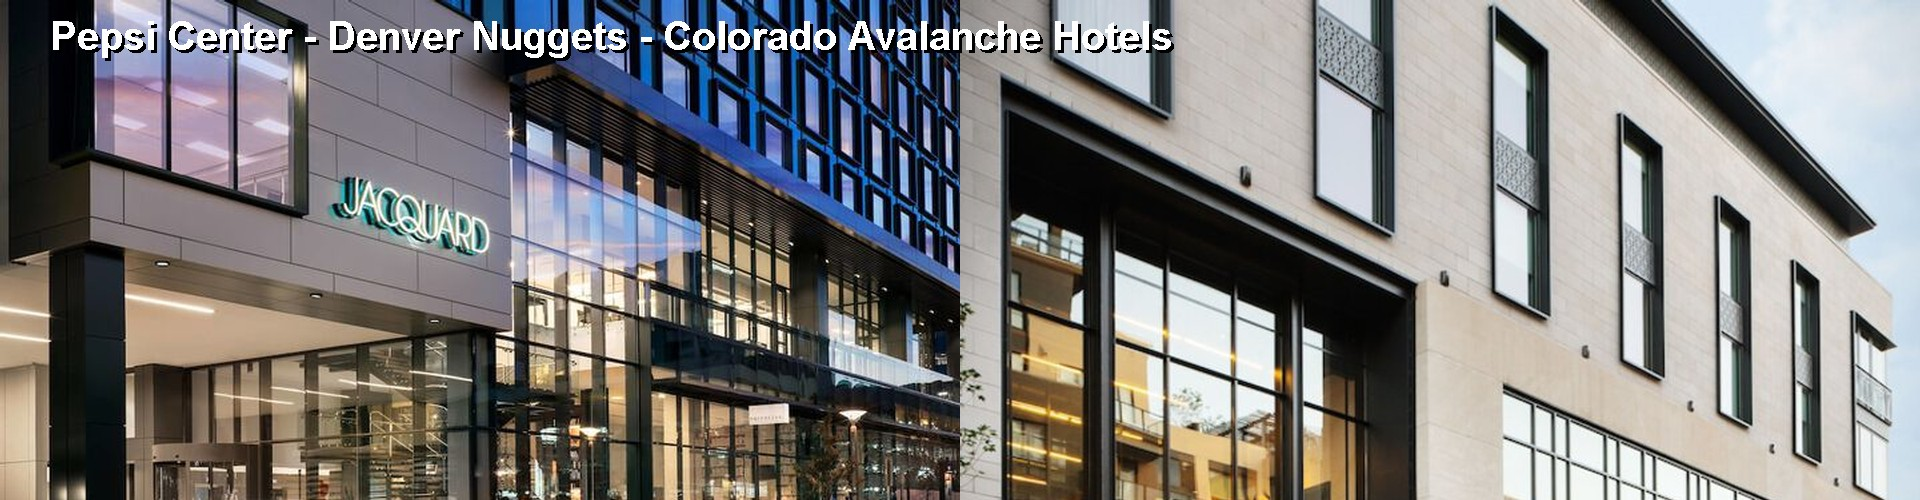 $52+ Hotels Near Pepsi Center Denver Nuggets Colorado Avalanche CO